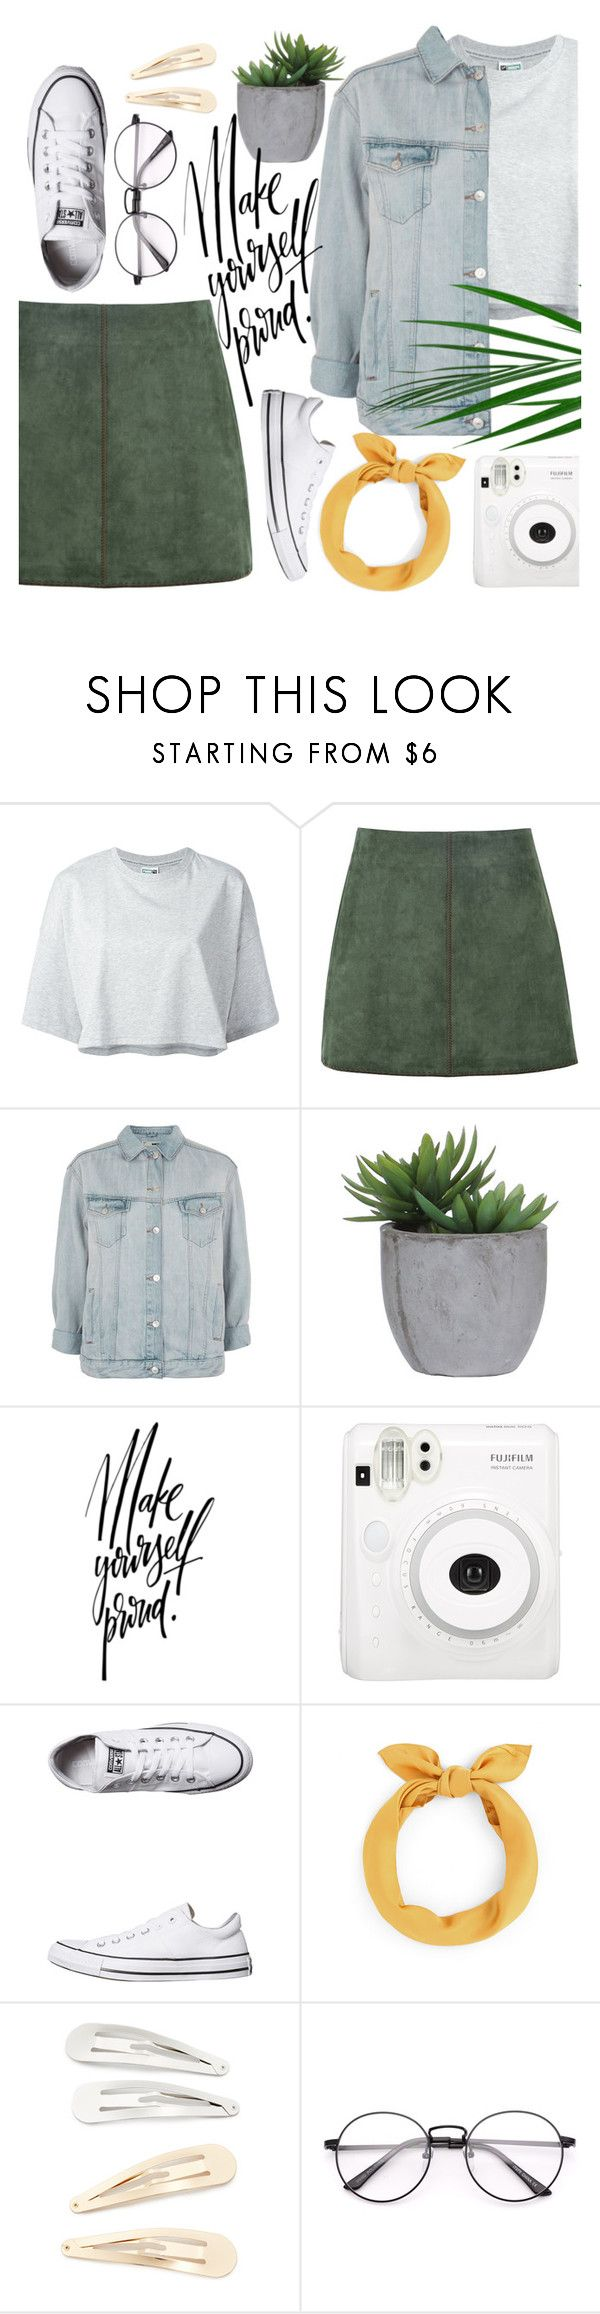 """""""°do everything with love°"""" by andronic-otilia ❤ liked on Polyvore featuring Puma, George J. Love, Topshop, Lux-Art Silks, Converse and Kitsch"""